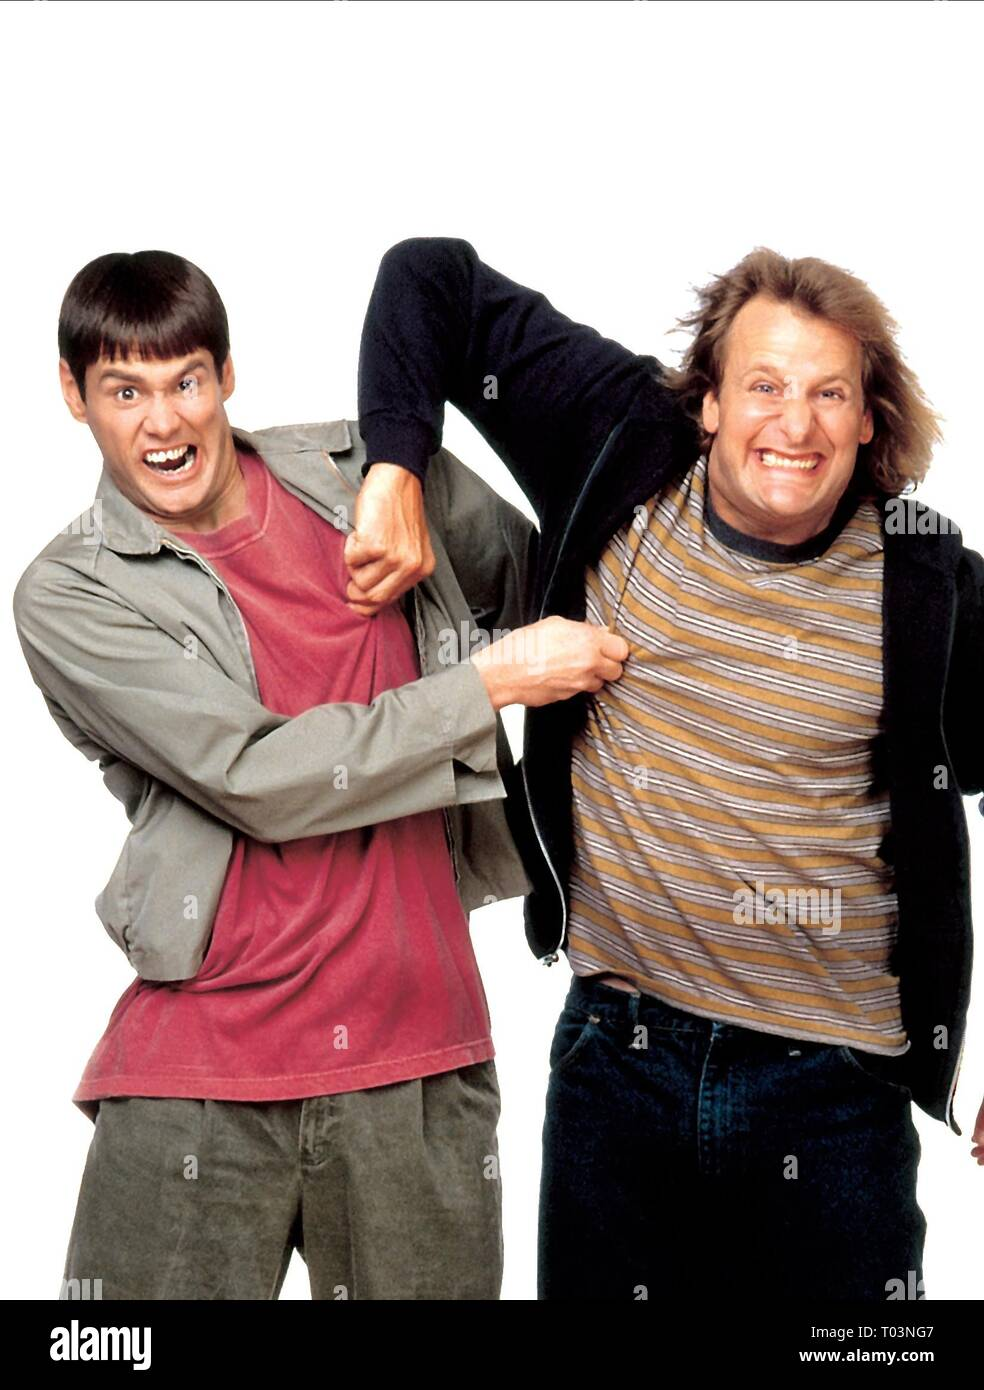 Jeff Daniels Dumb And Dumber High Resolution Stock Photography And Images Alamy